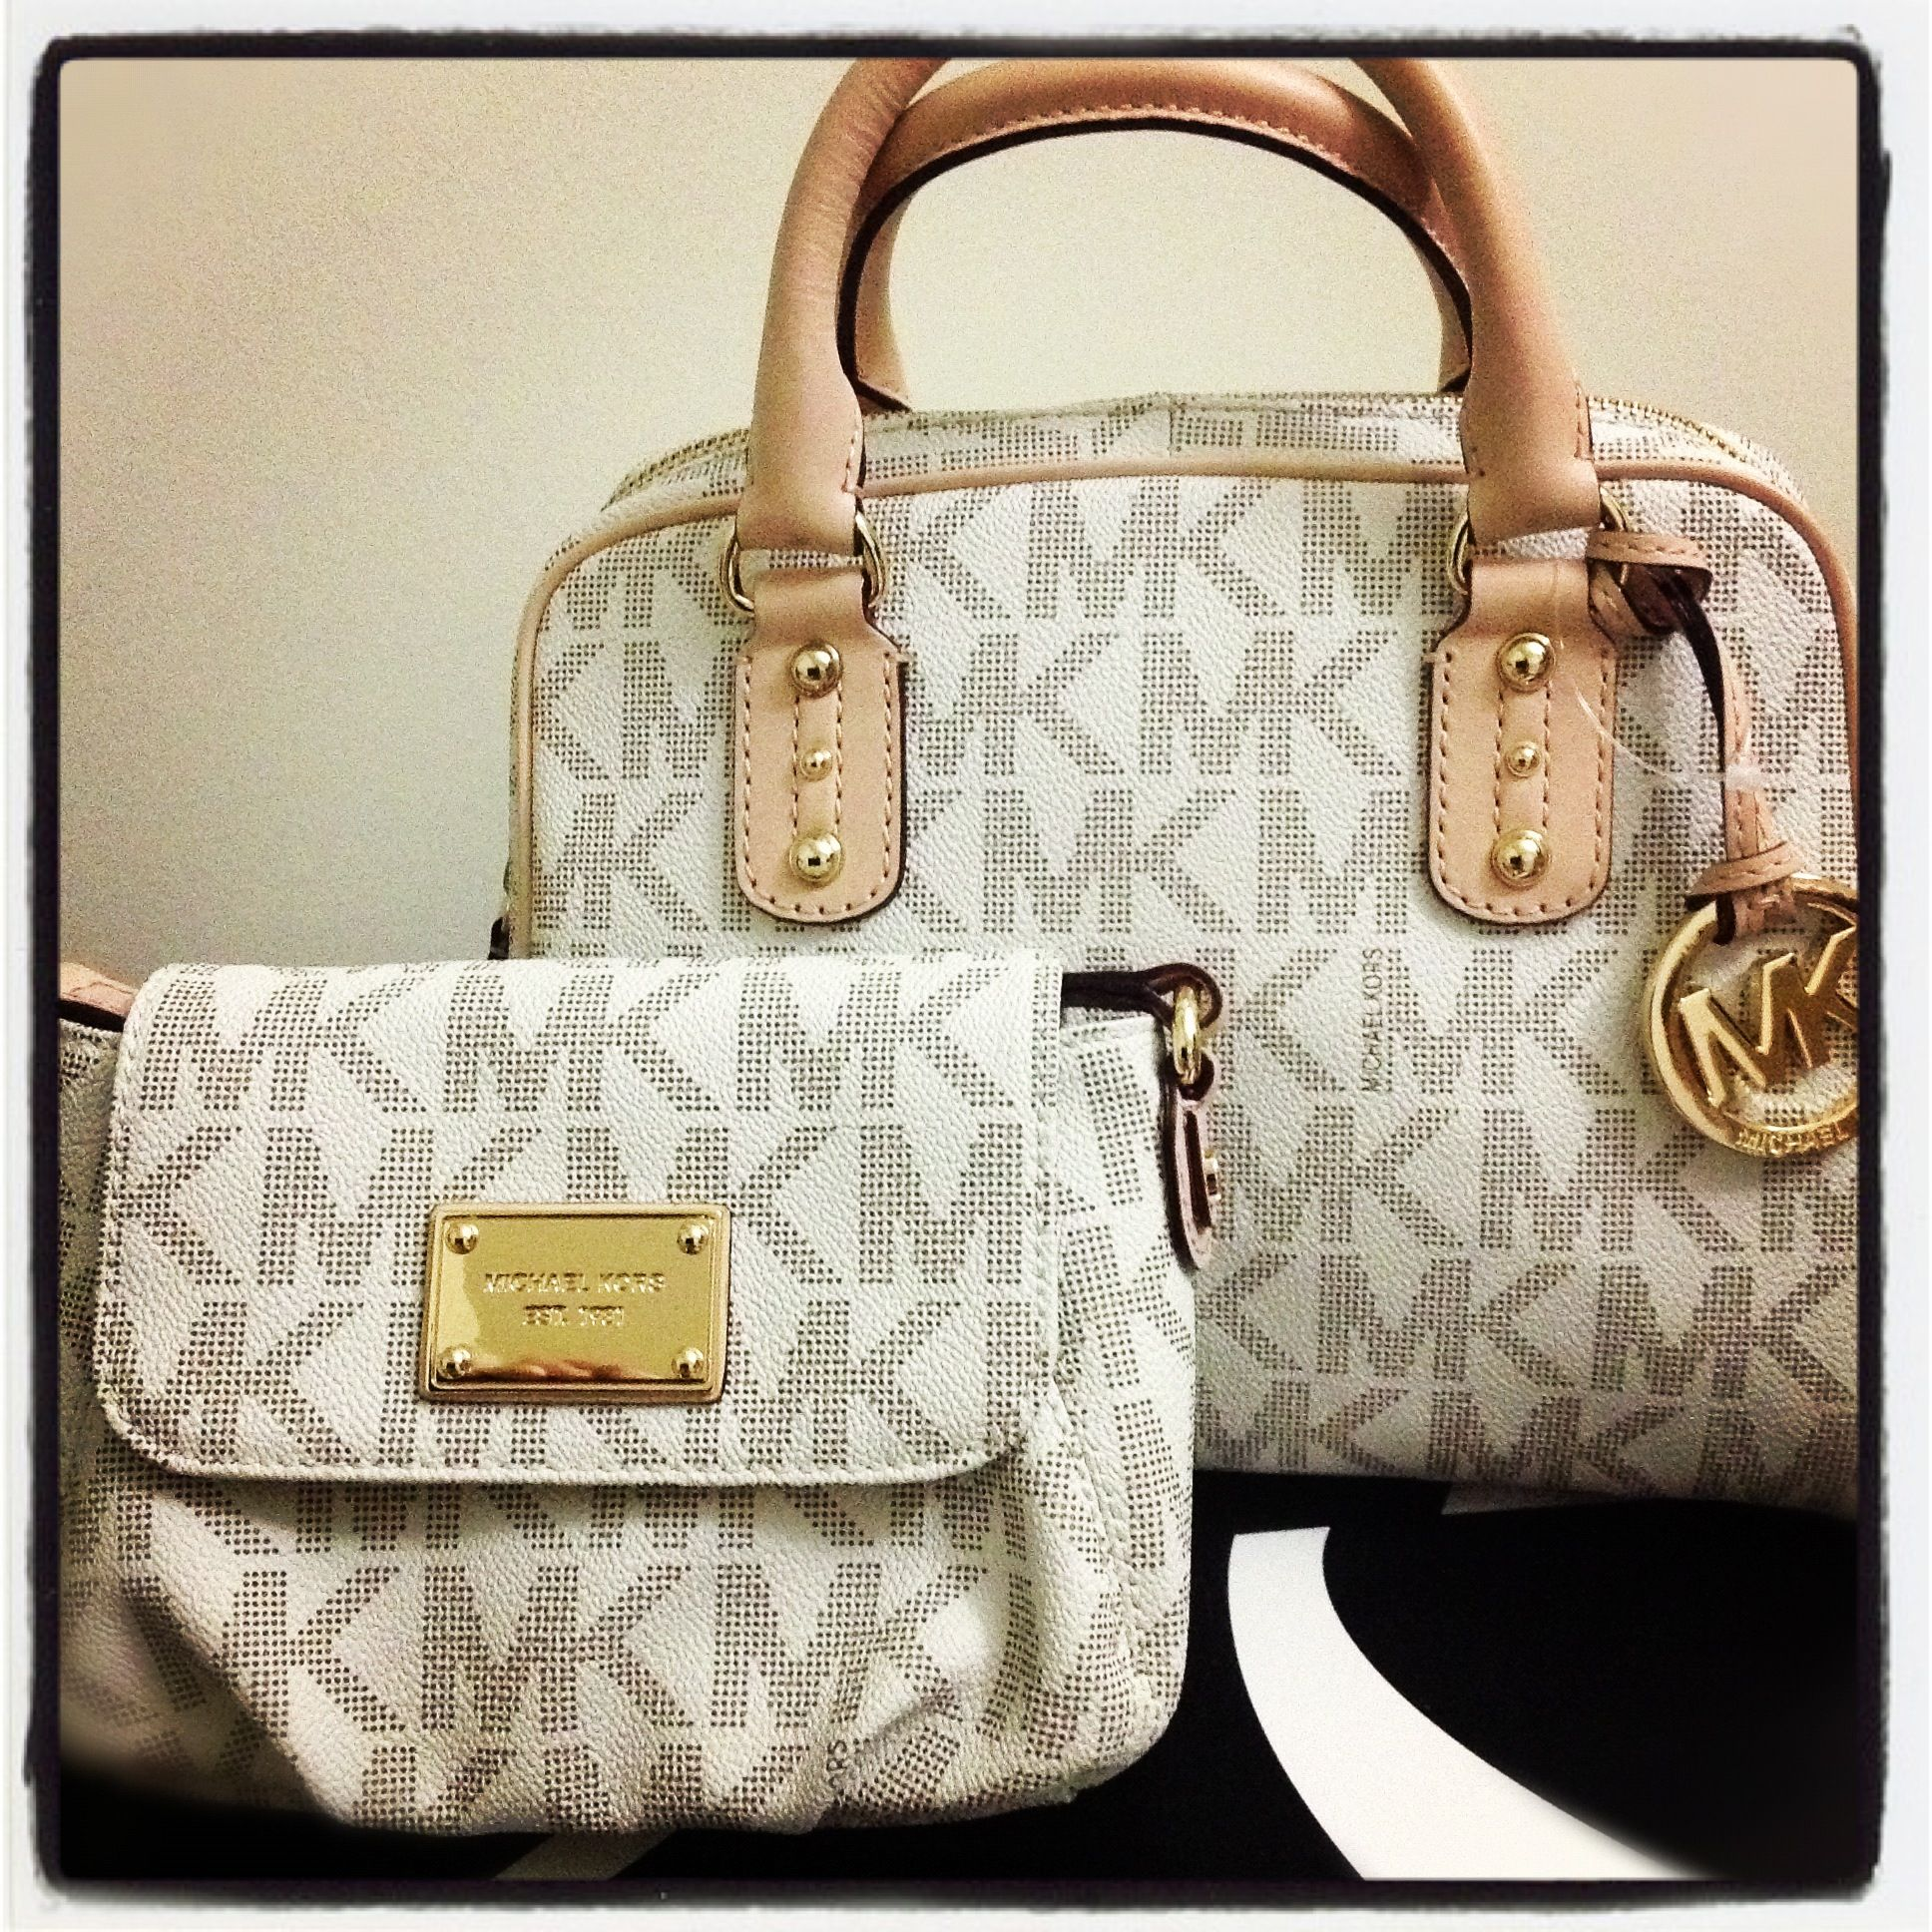 Mk Bags Ping Time Michael Kors Purses Outlet